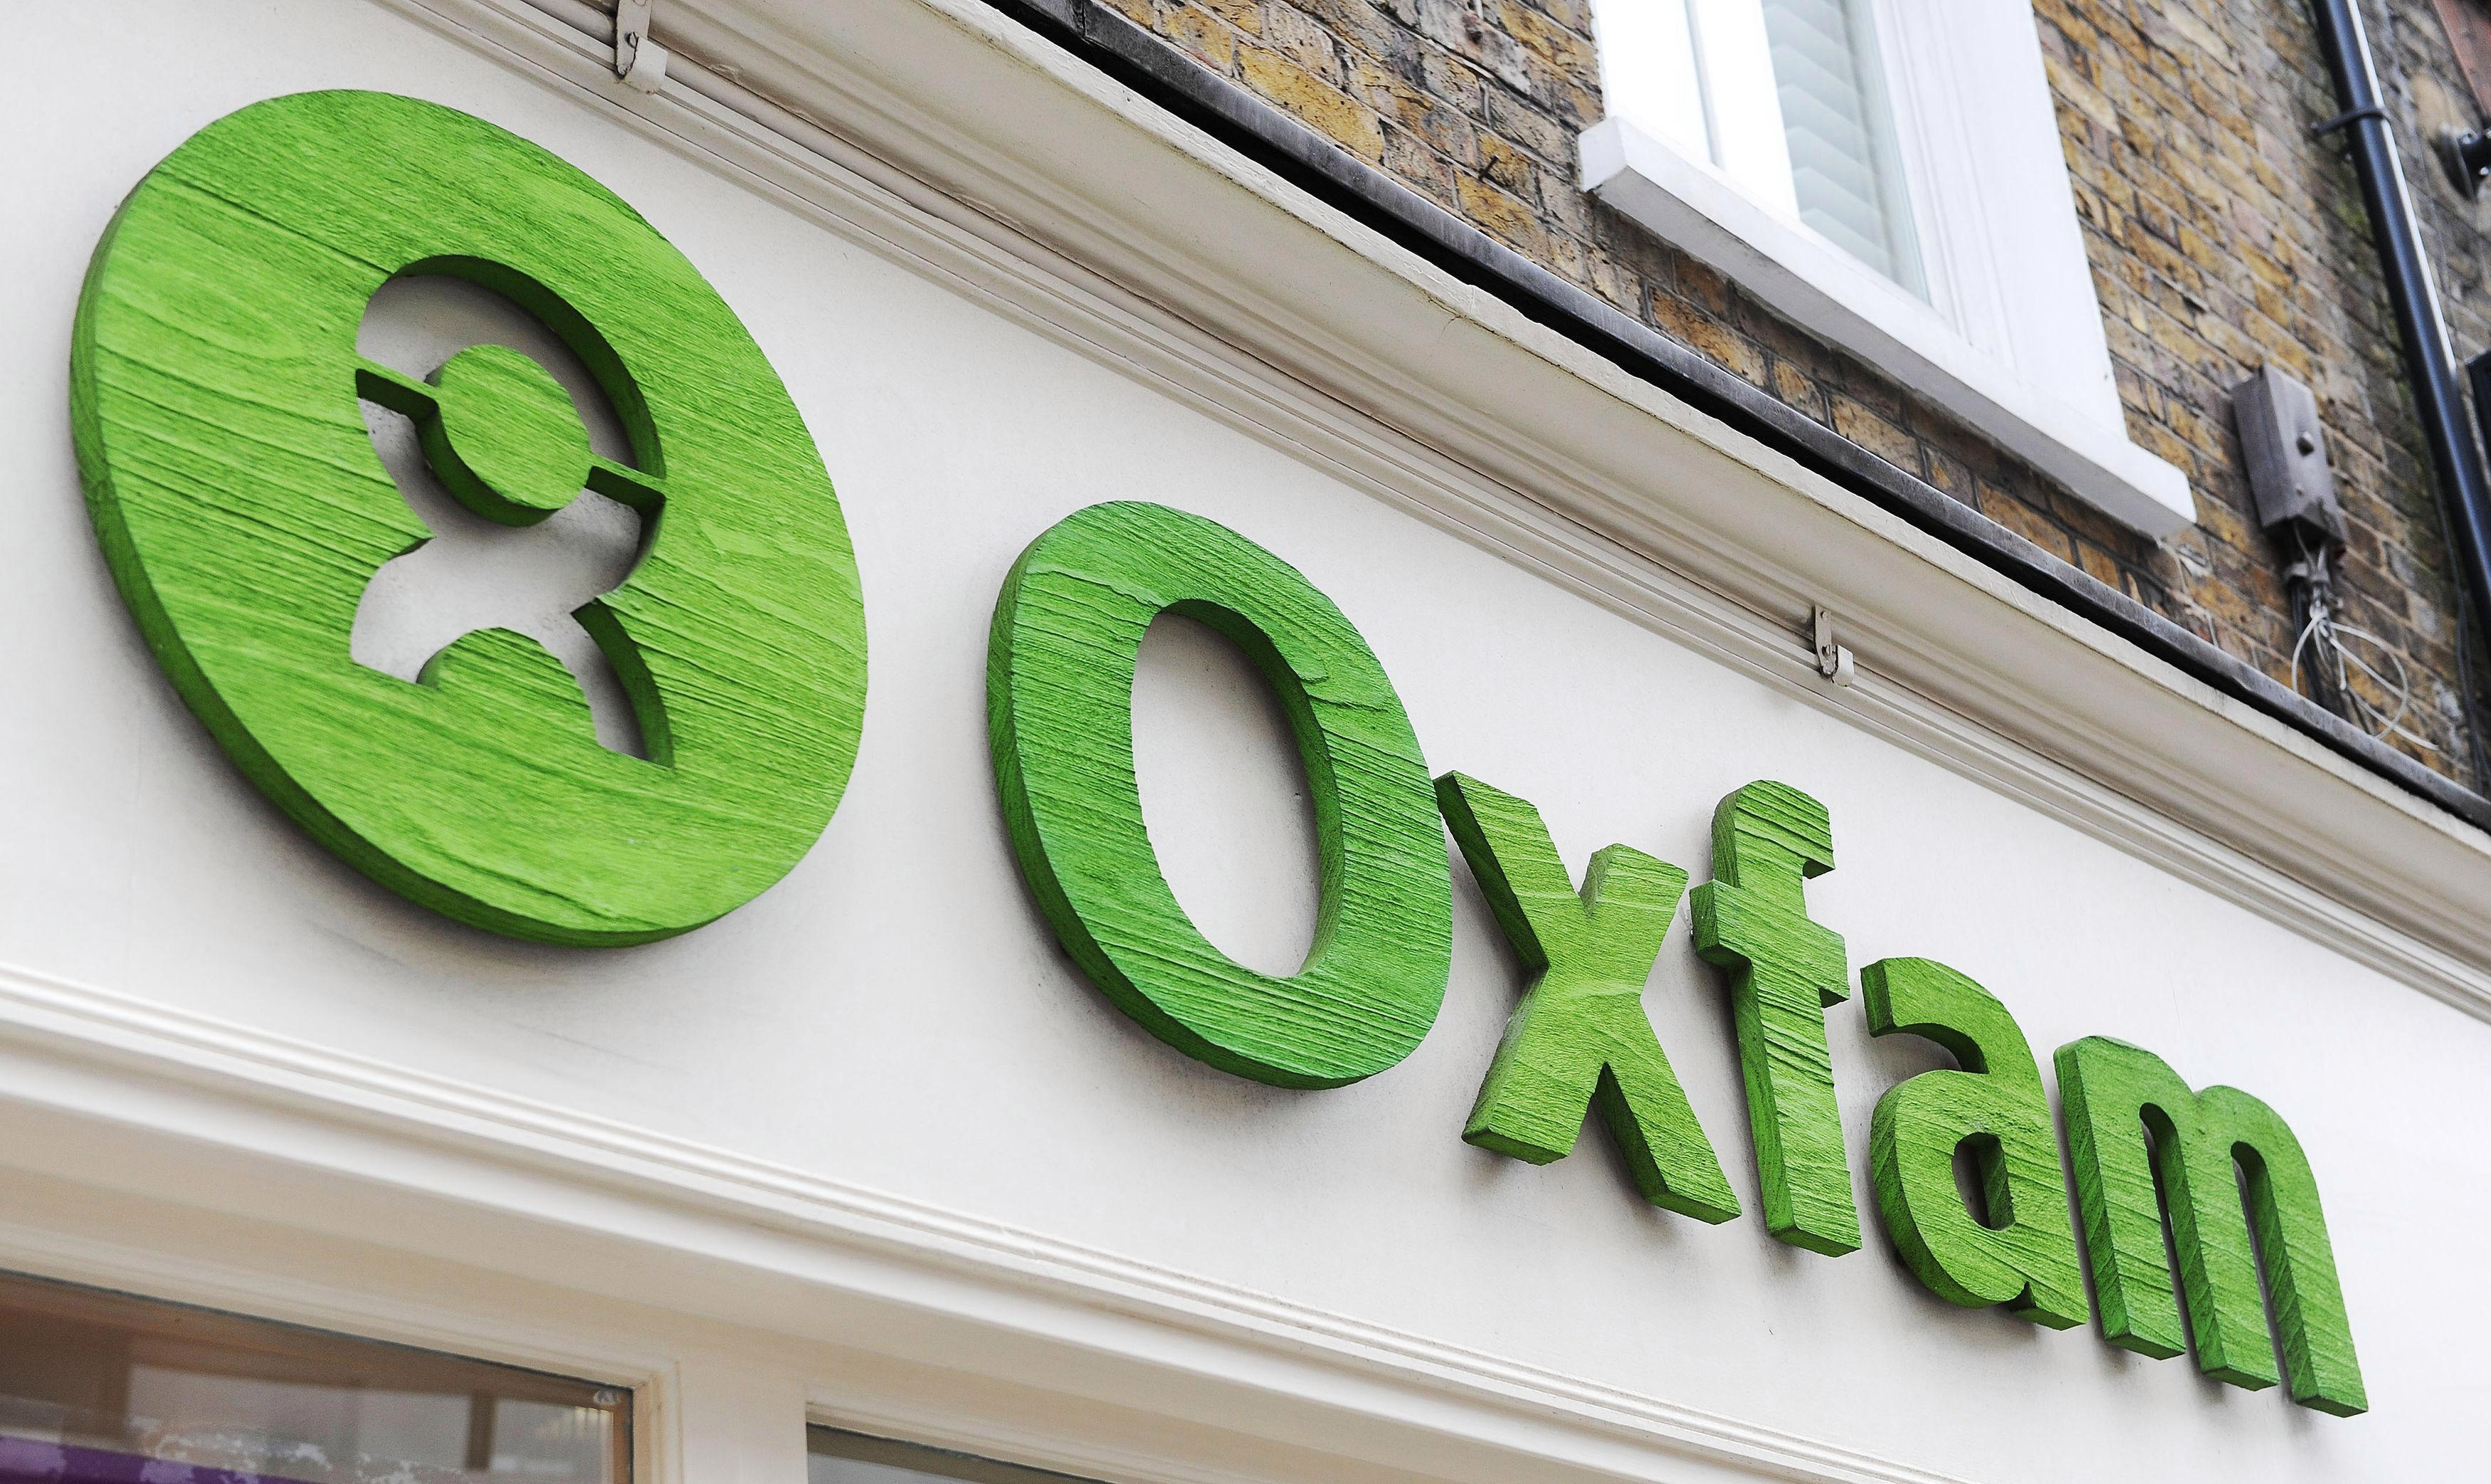 Former aid minister says she won't give to Oxfam anymore as criminal charges loom against charity over sexual allegations